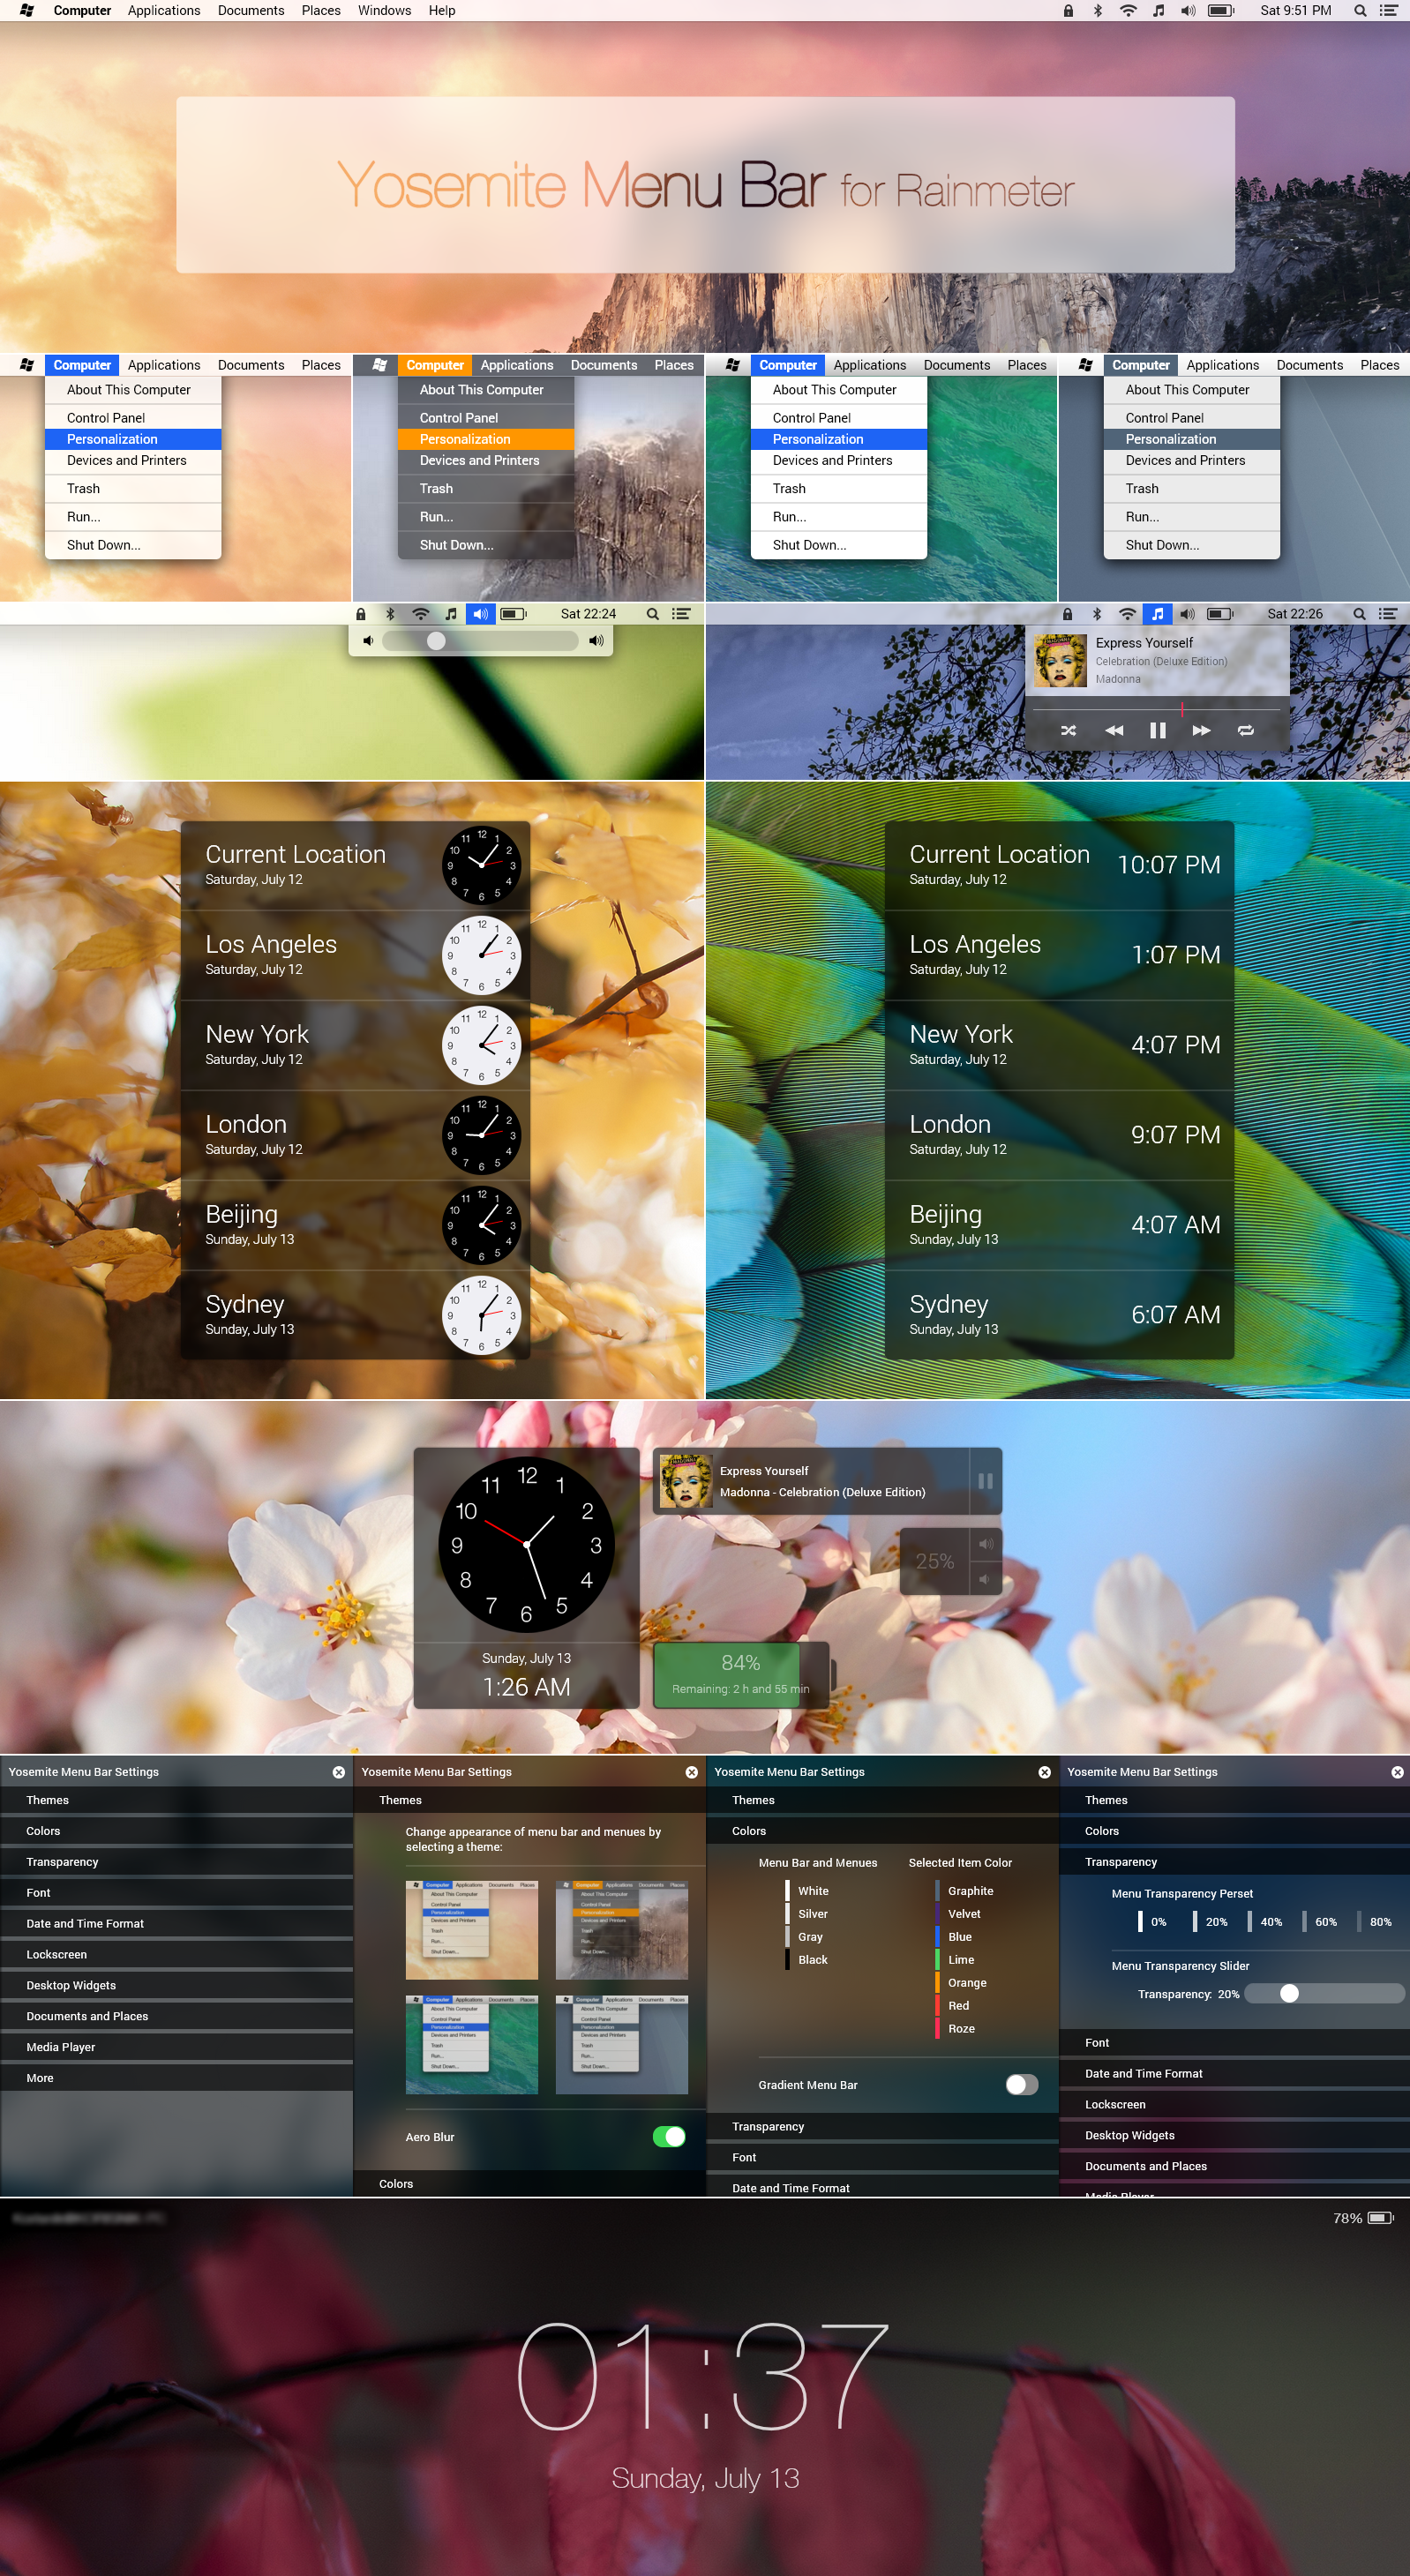 Yosemite Menu Bar by rabra